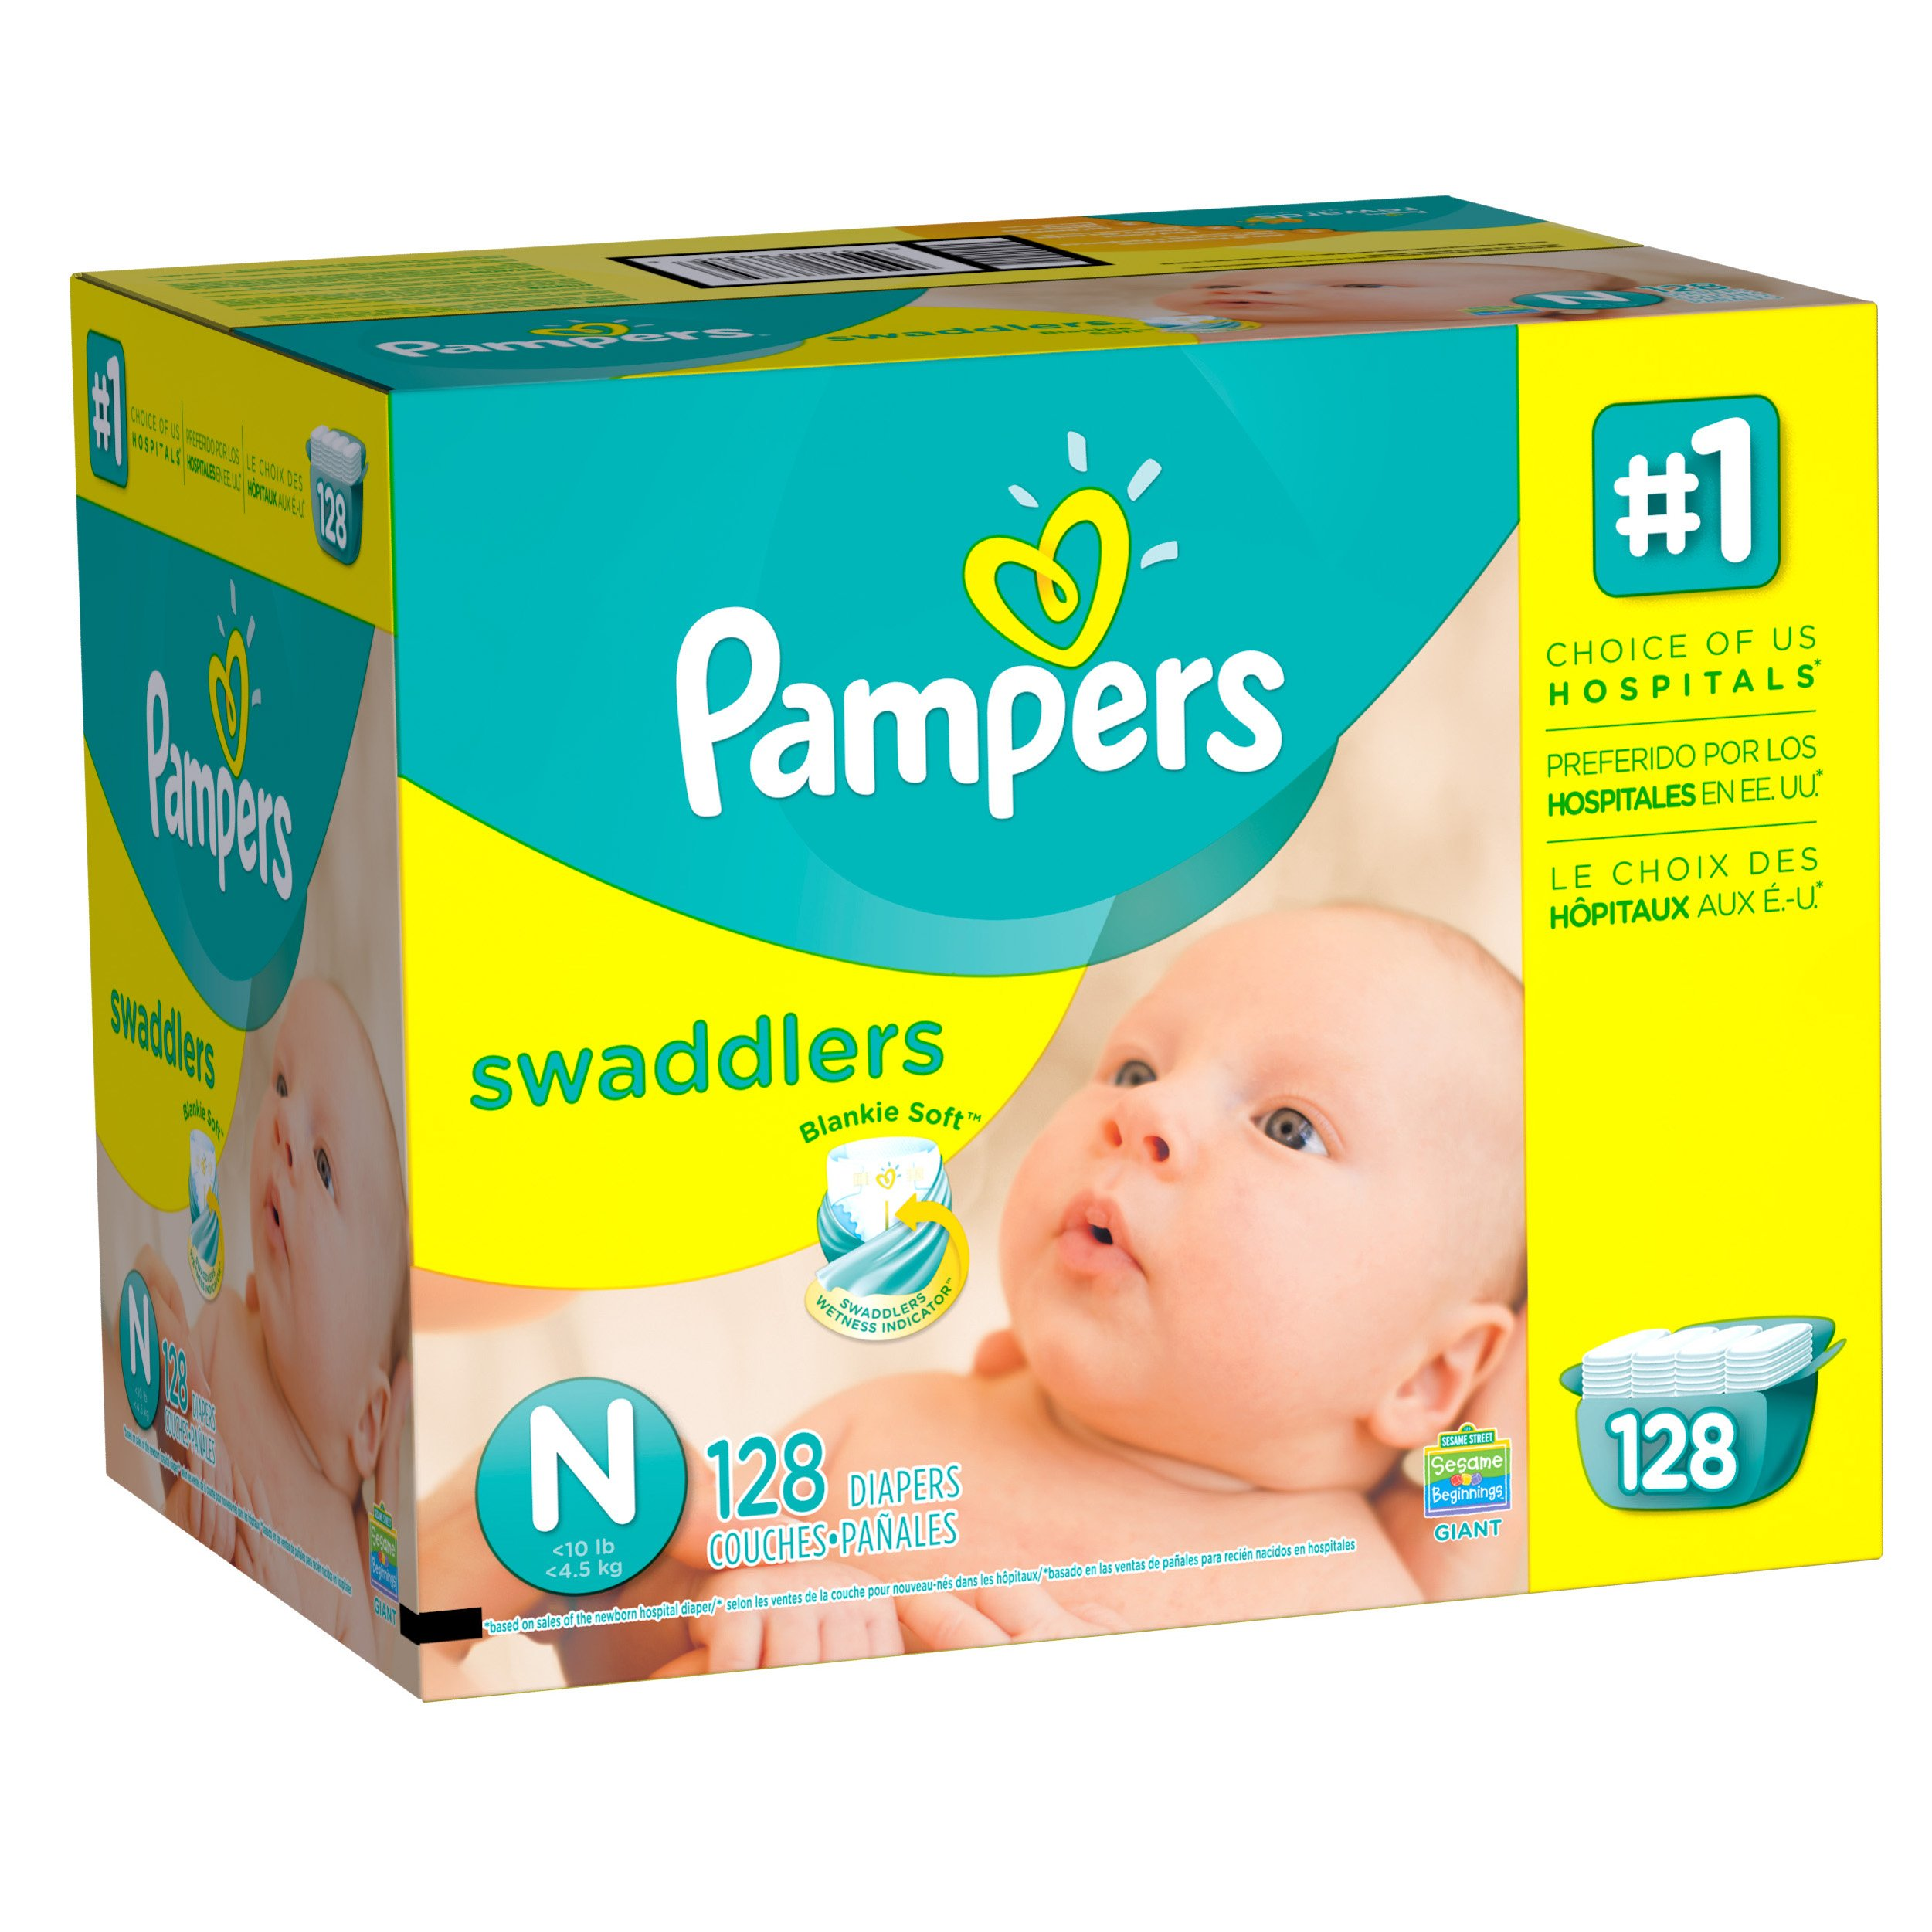 Pampers Swadlers Size N by Pampers